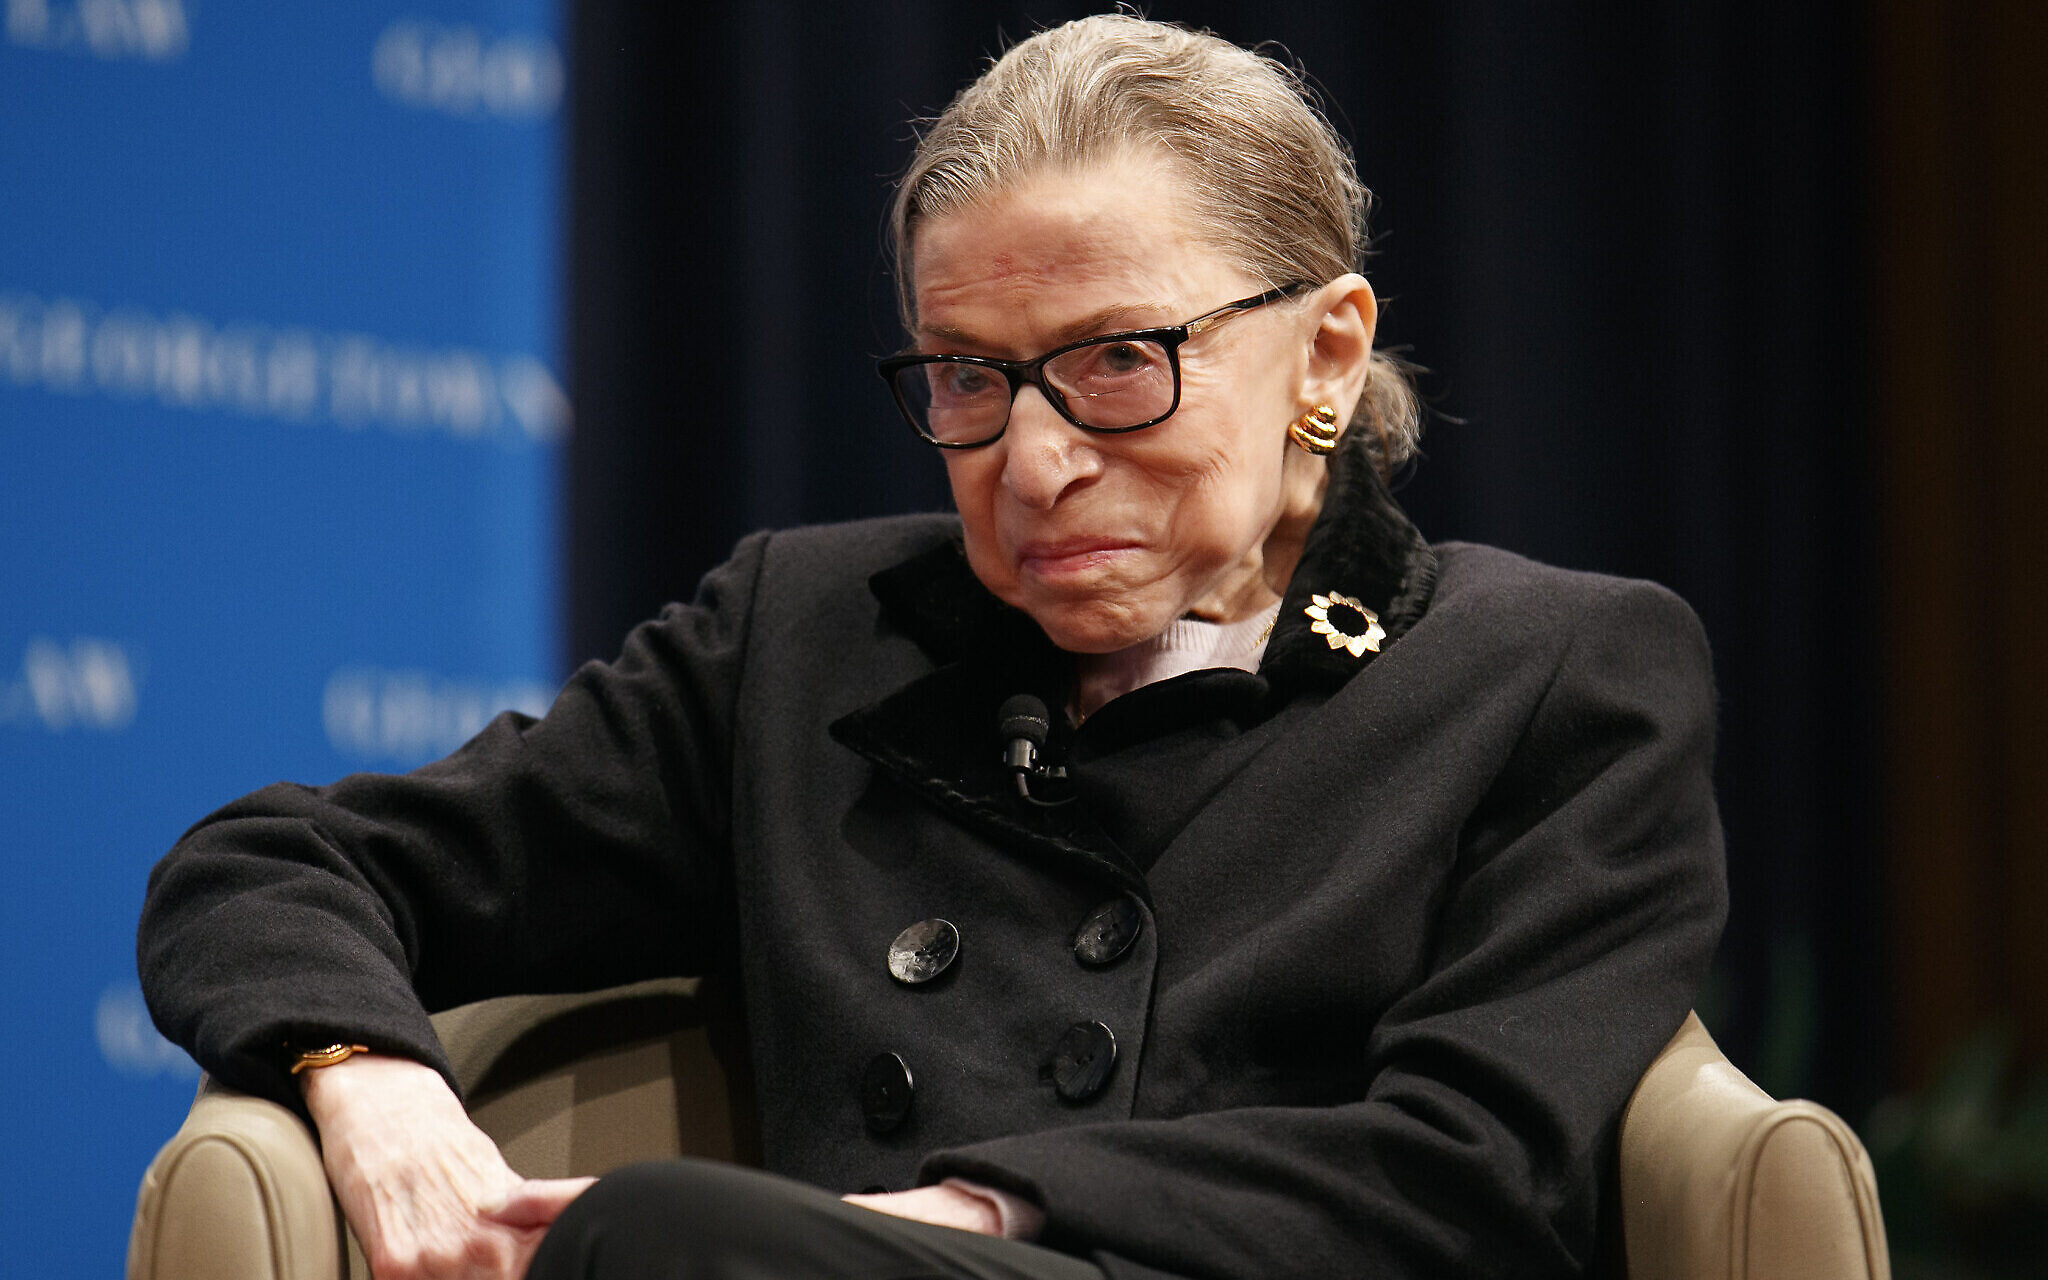 US Supreme Court Judge Ruth Bader Ginsburg in hospital with infection